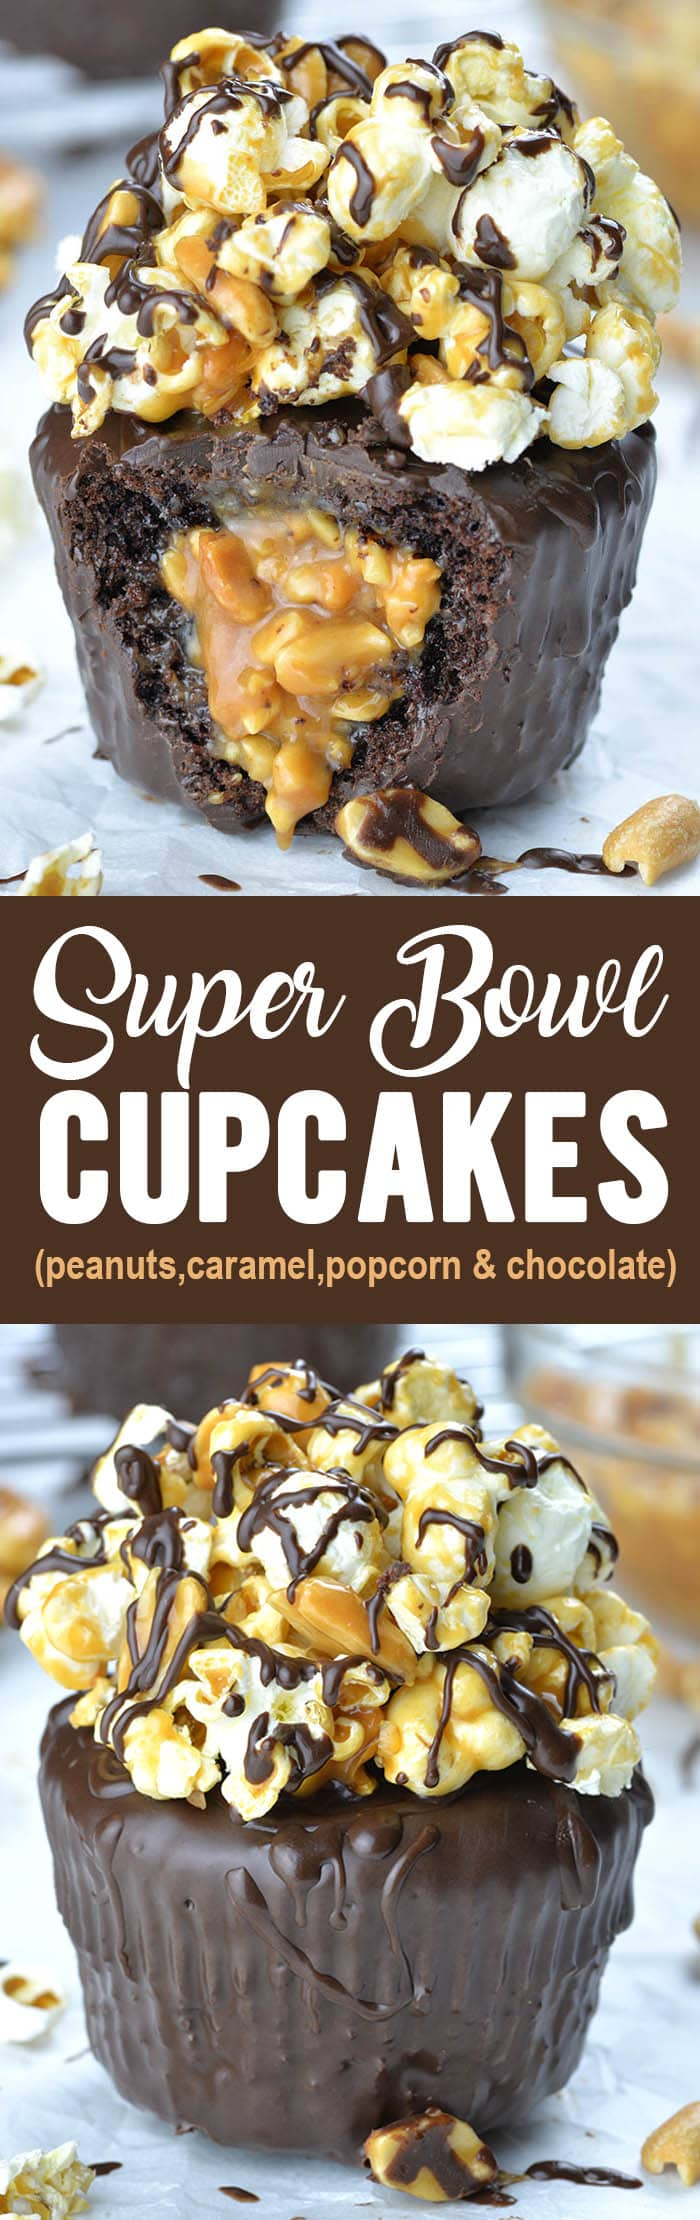 Nothing tastes sweeter than a Super Bowl win, but these delicious chocolate cupcakes with salted caramel, peanuts and popcorn come pretty close!